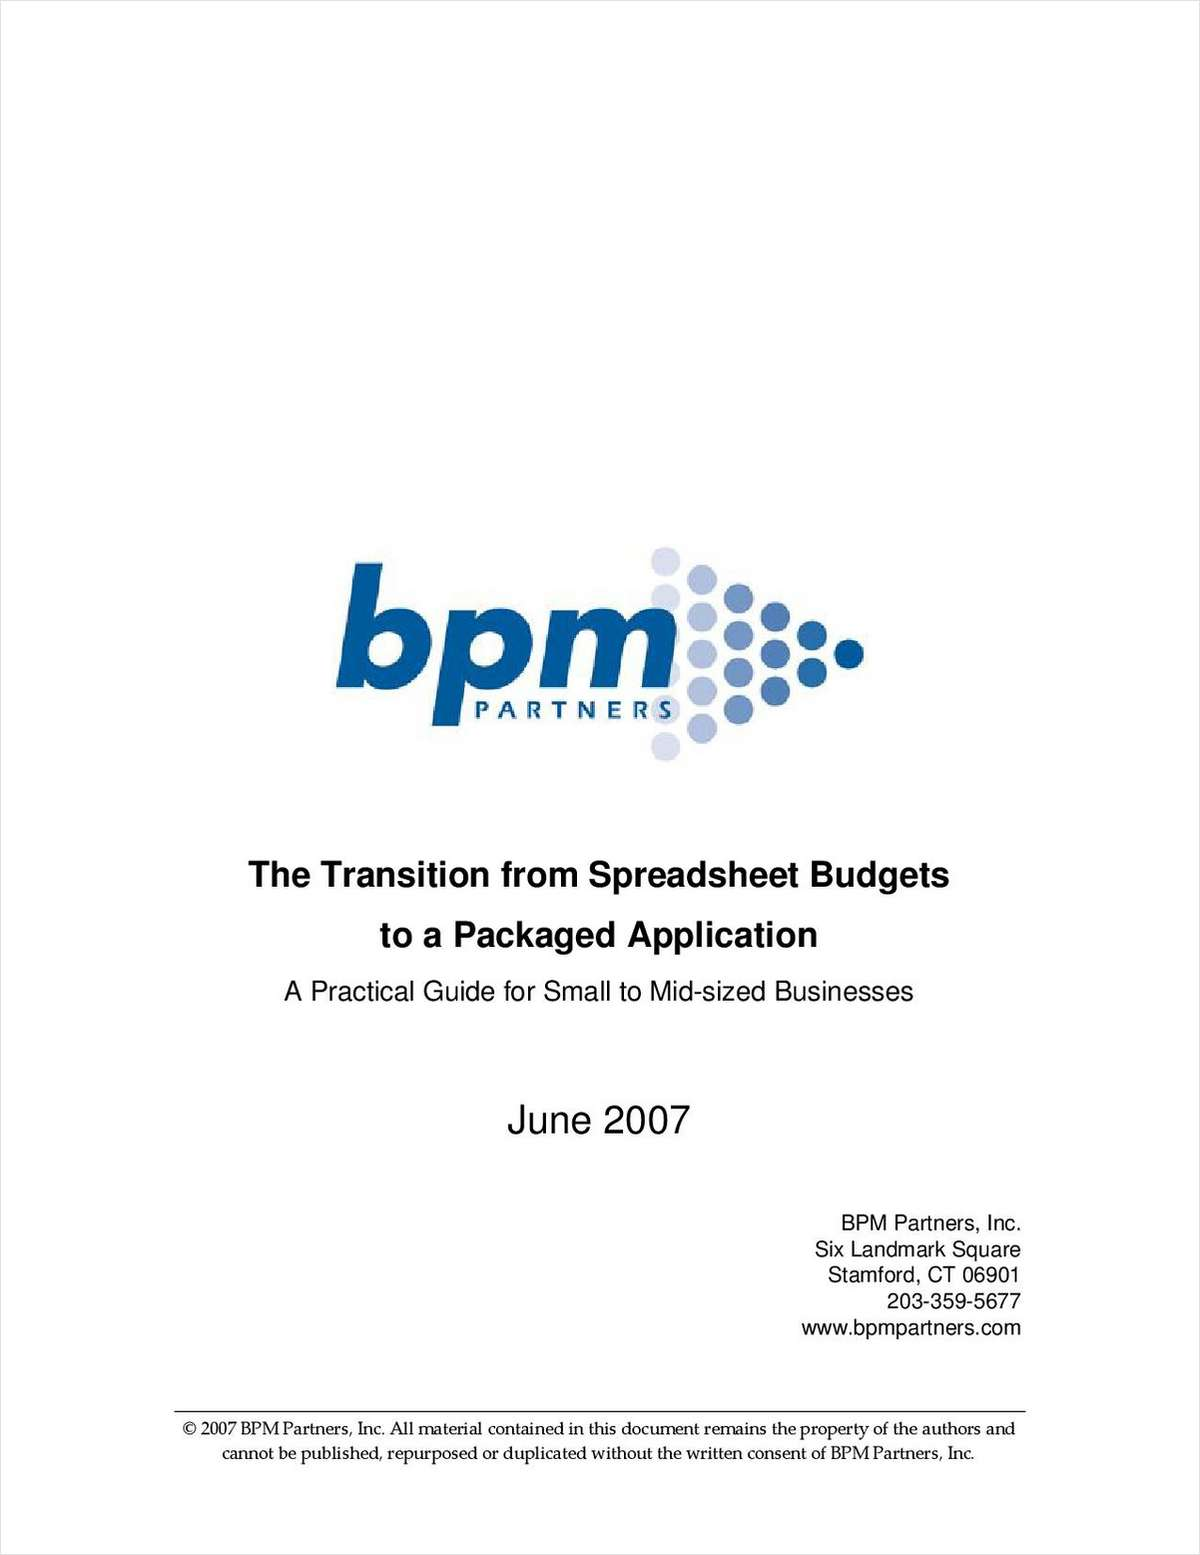 The Transition from Spreadsheet Budgets to a Packaged Application: A Practical Guide for Small to Mid-sized Businesses